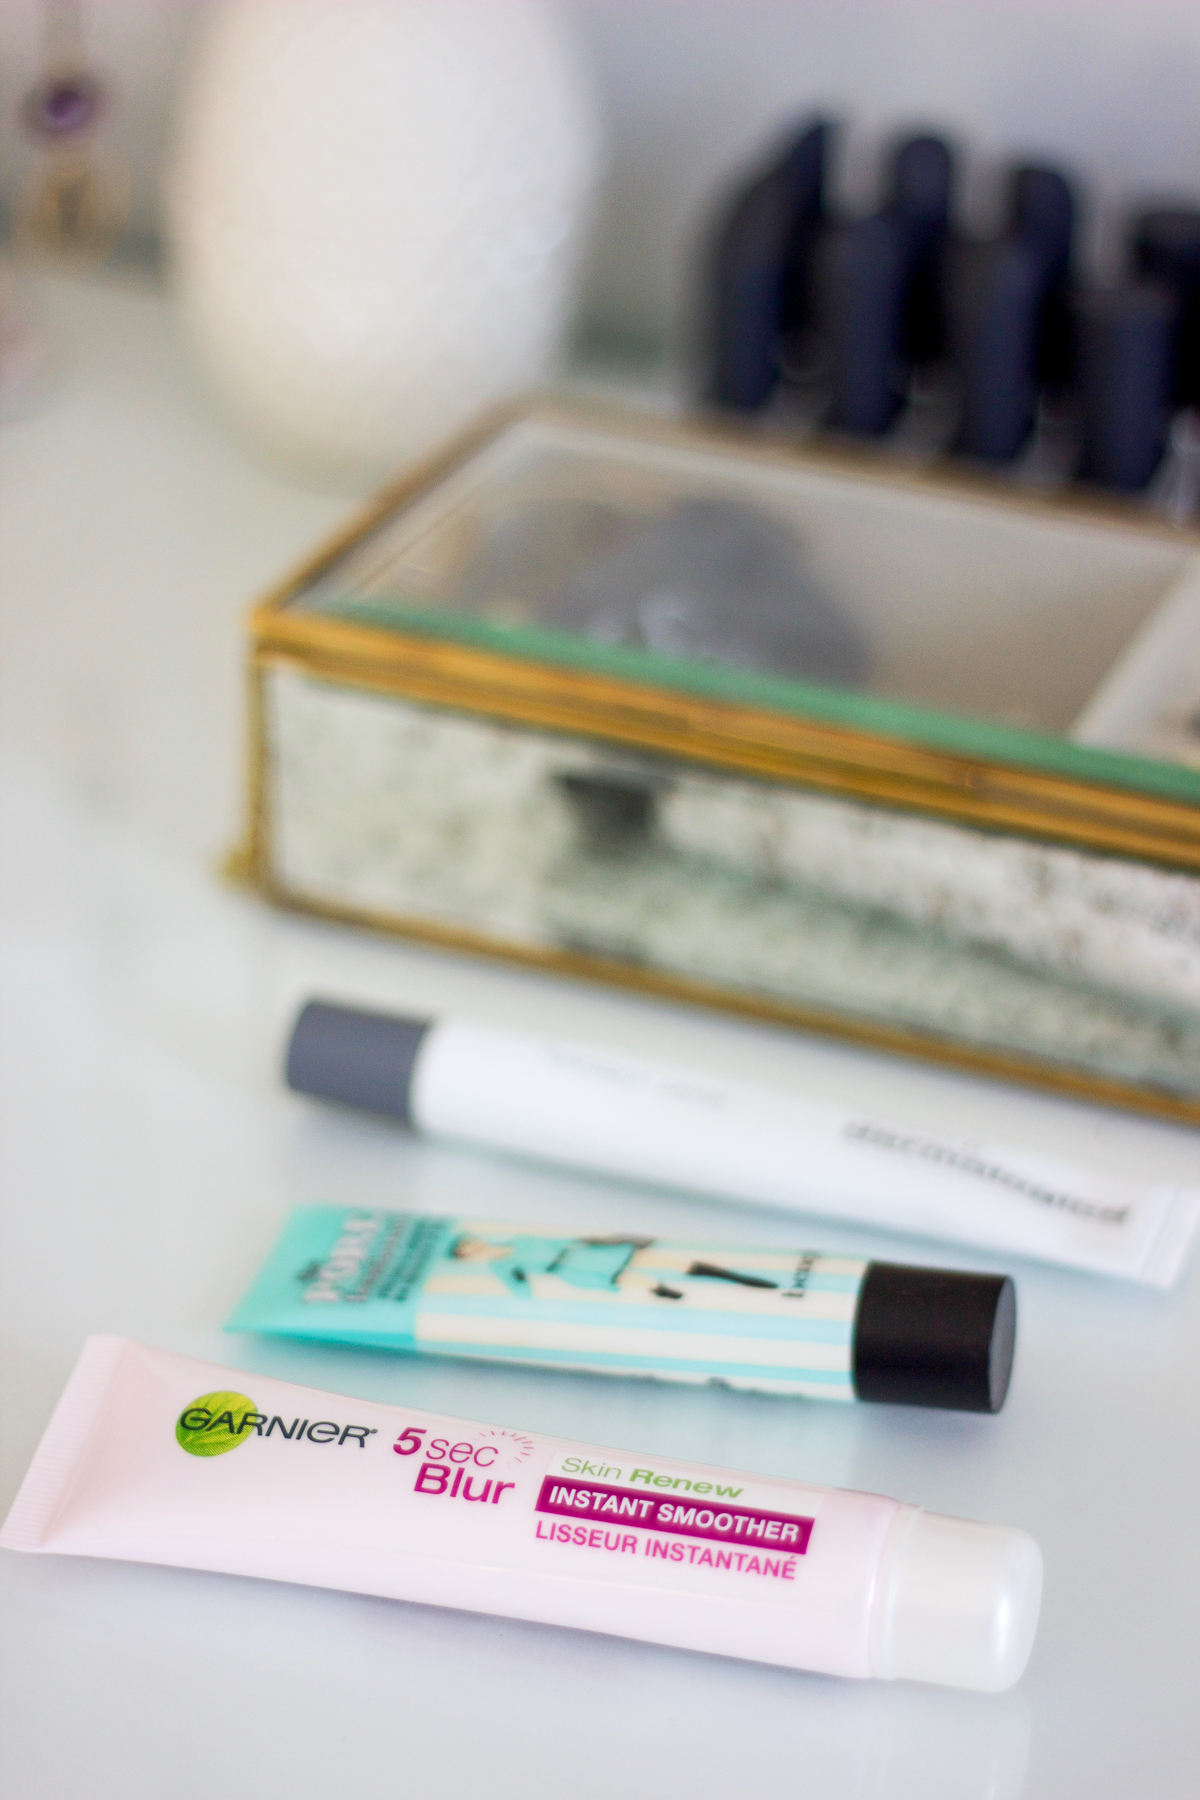 The best primers for smooth skin - Garnier 5 Second Blur, Benefit the Porefessional and Dermalogica hydrablur primer